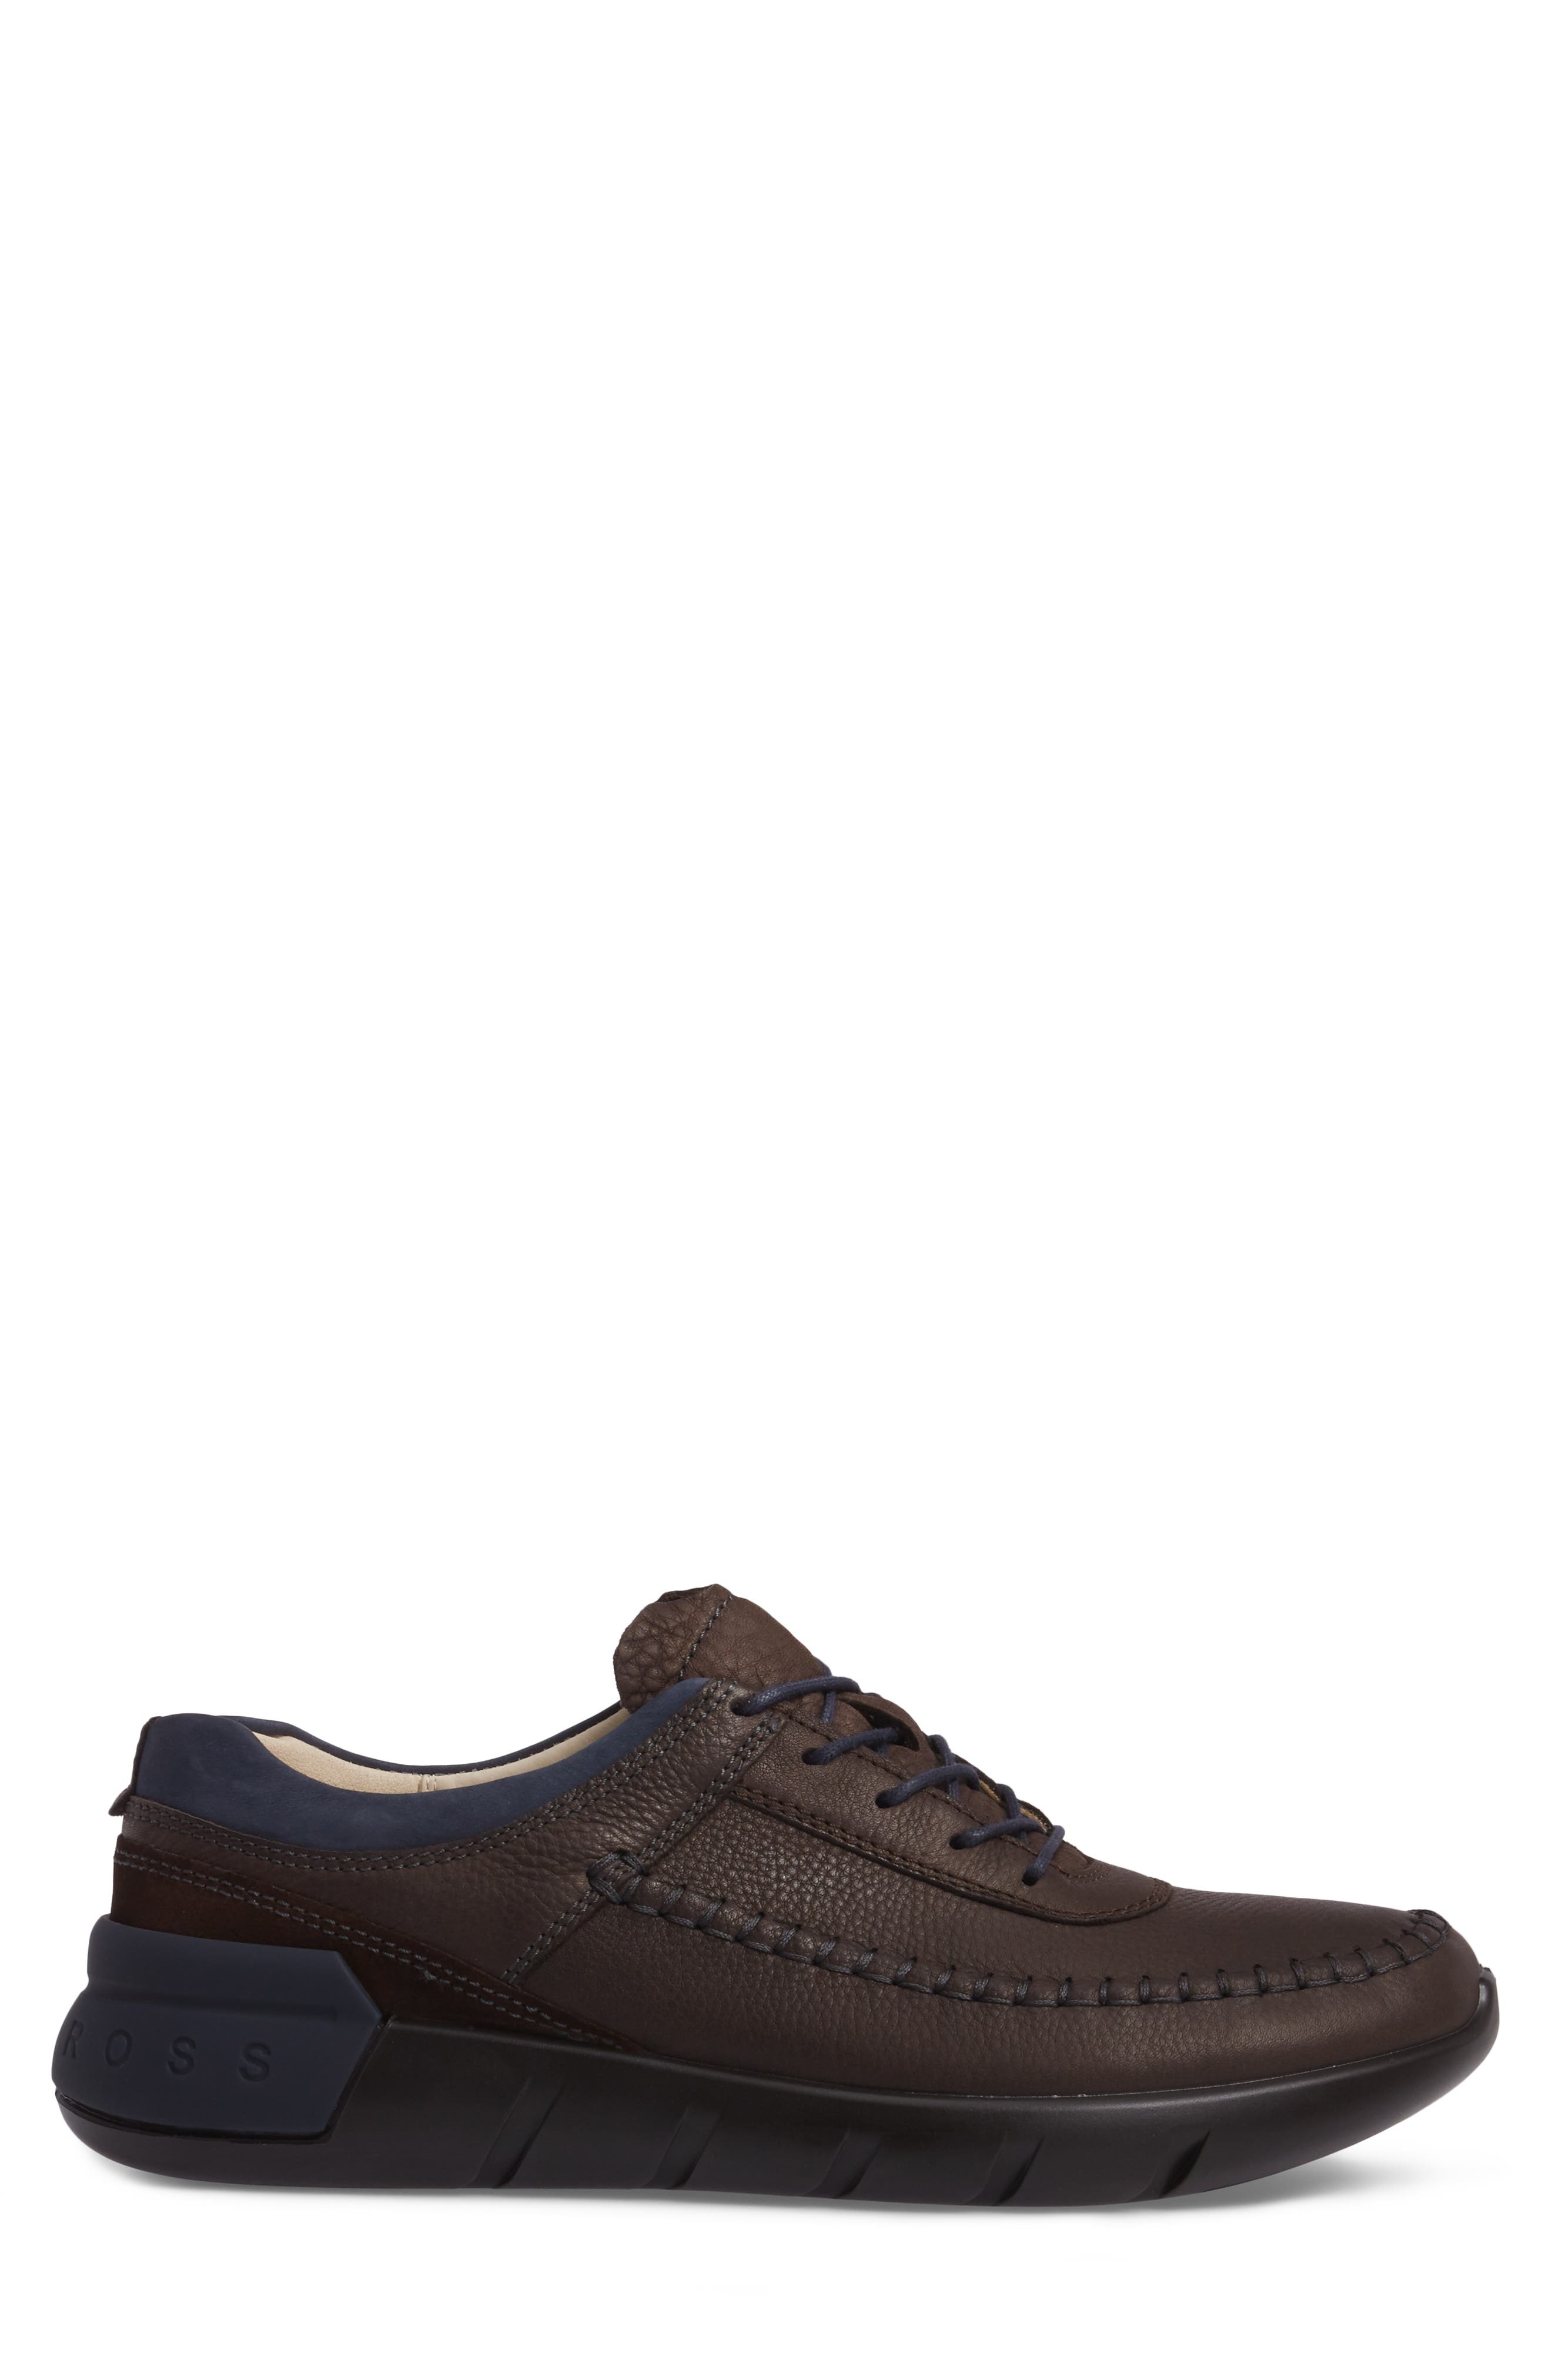 Alternate Image 3  - ECCO Cross X Classic Sneaker (Men)